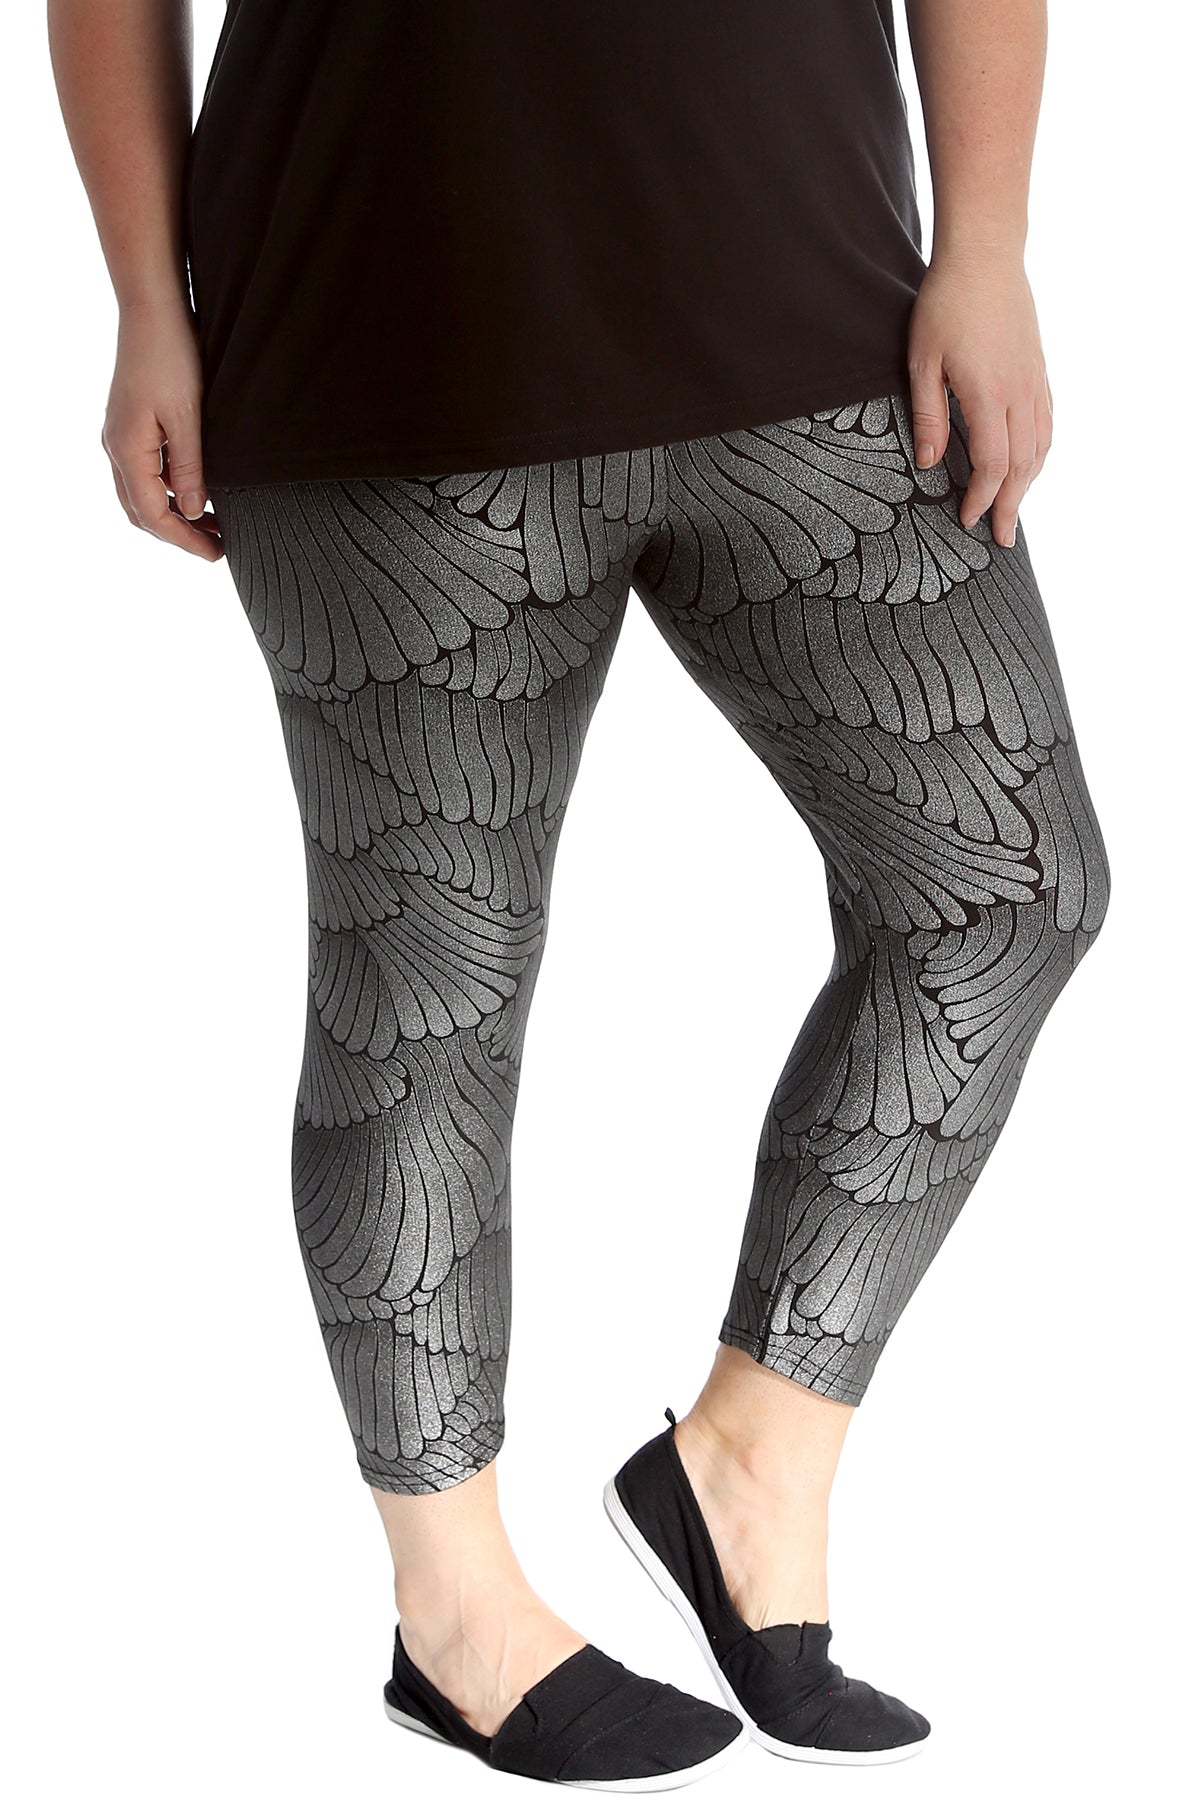 7209 Wings Disco Fabric Leggings